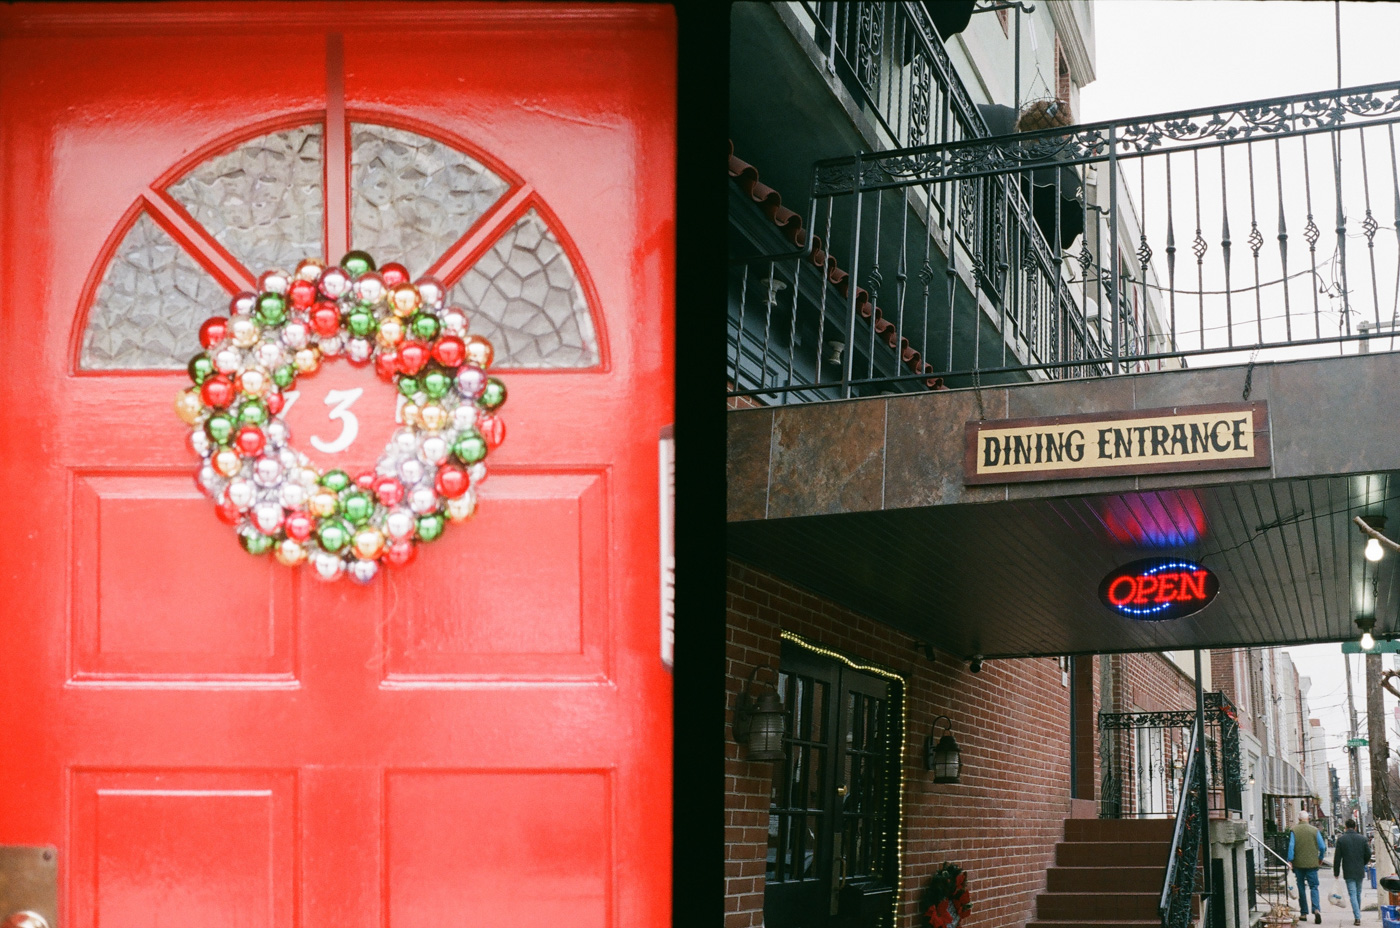 Red Door and Dining Entrance